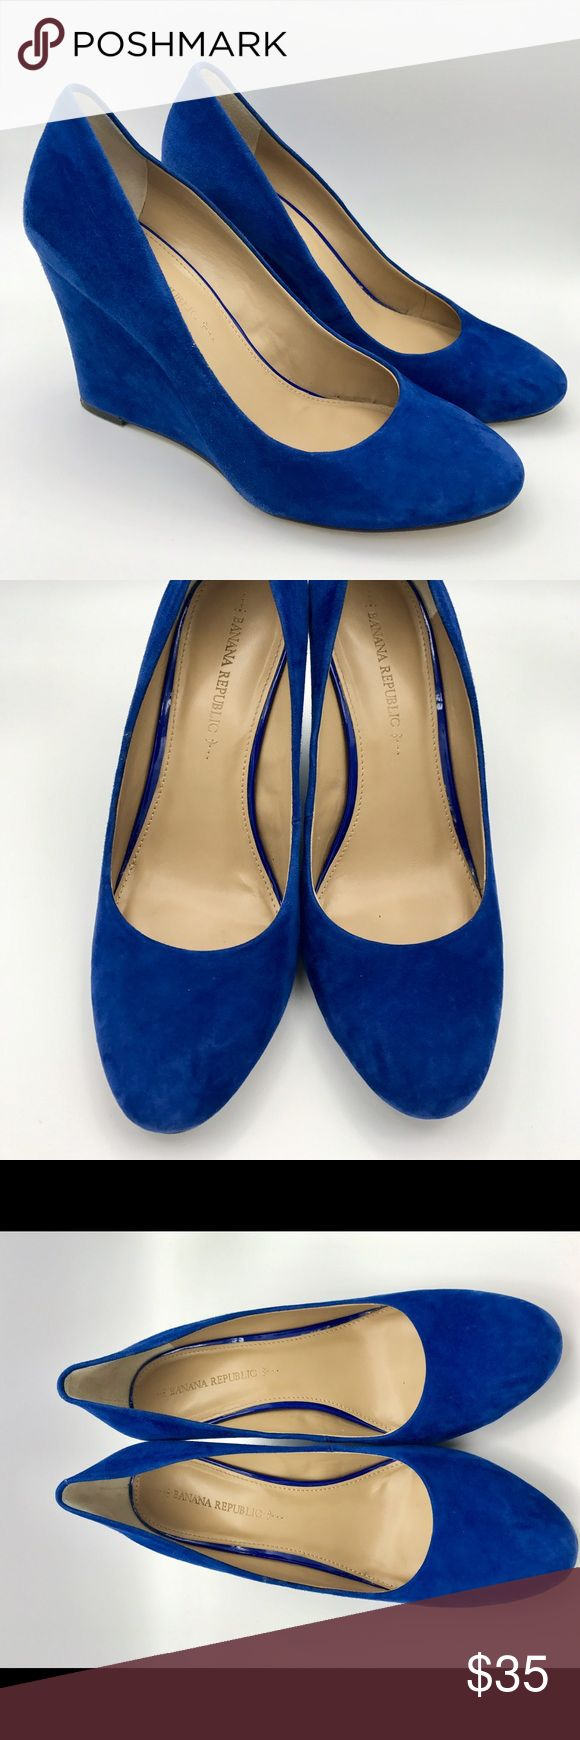 Cobalt Blue Wedge size 7.5 Suede wedge Blue Cobalt size 7.5 gently worn Banana Republic Shoes Wedges